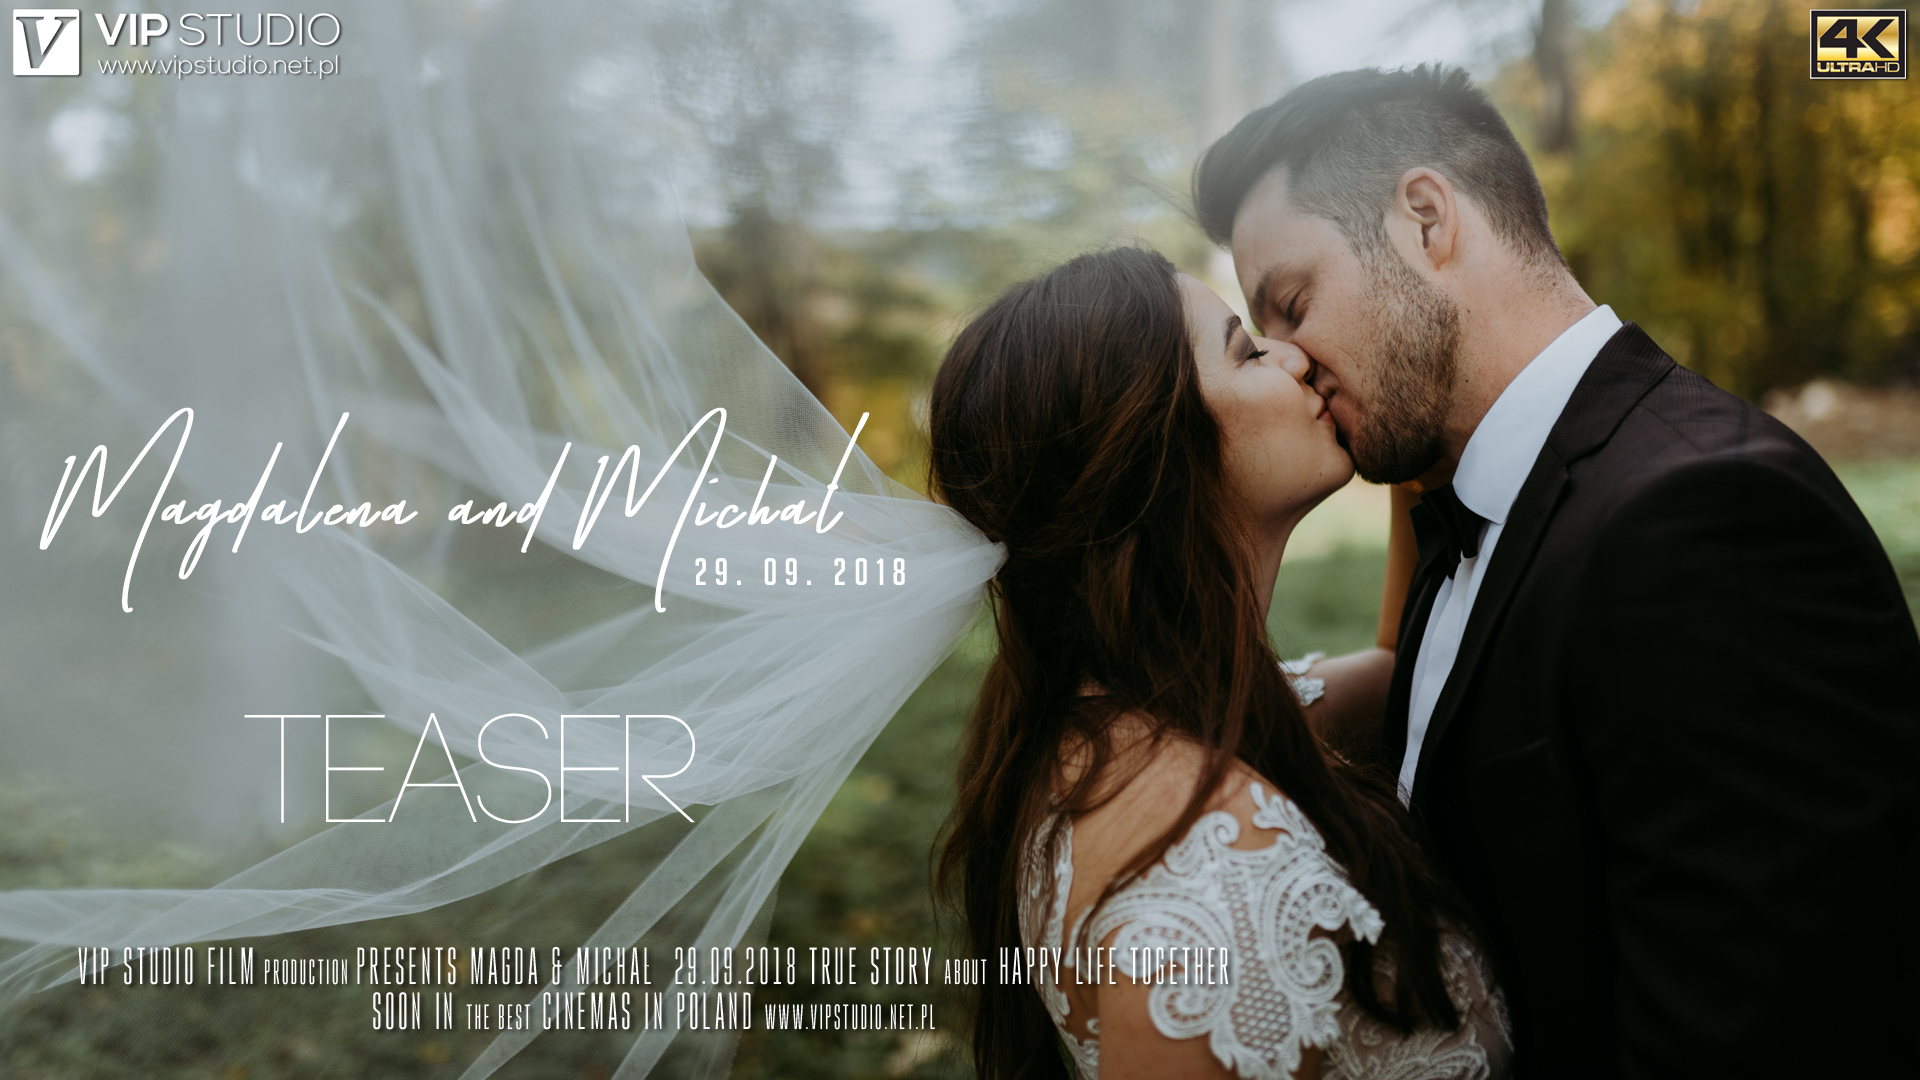 WEDDING TEASER – Magdalena & Michał (4K UHD)